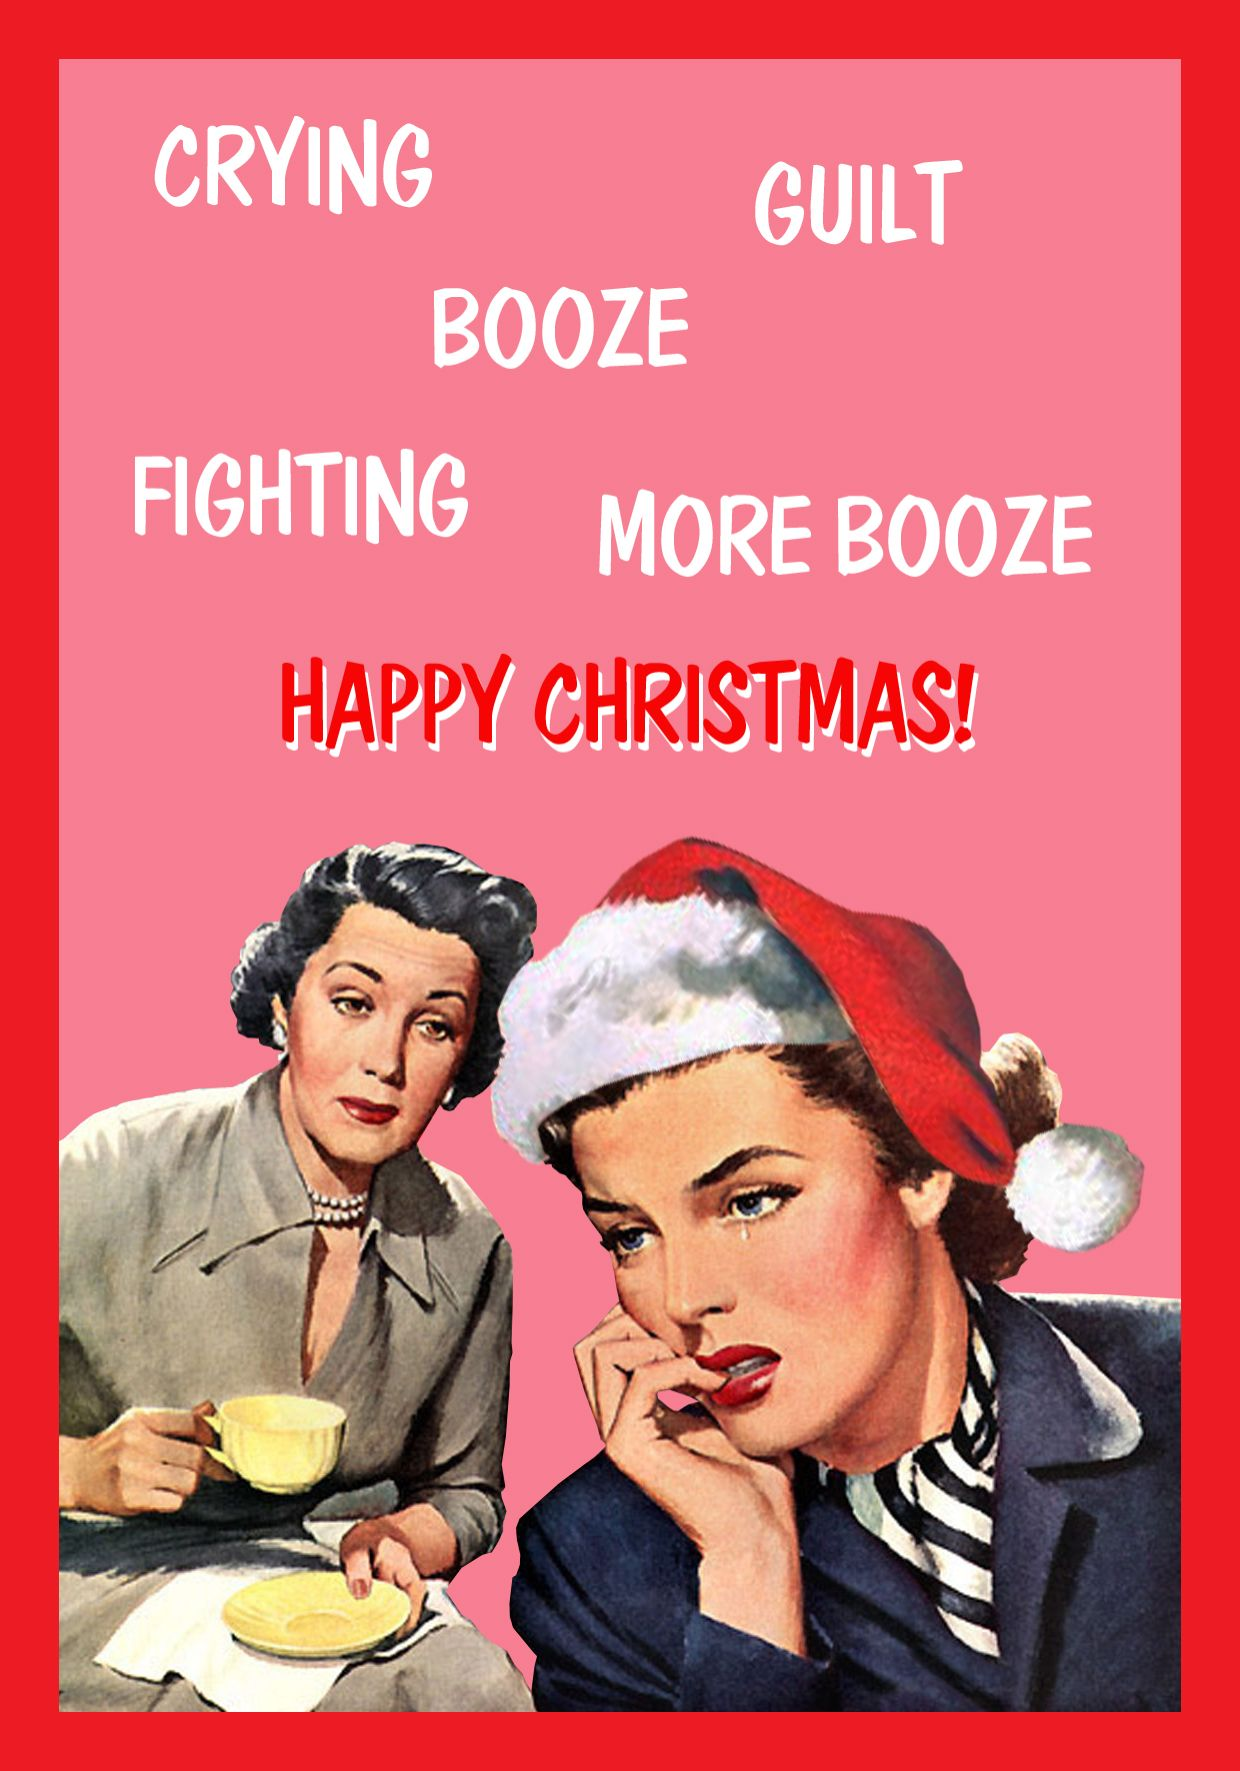 Crying Booze Guilt Fighting More Booze Happy Merry Christmas